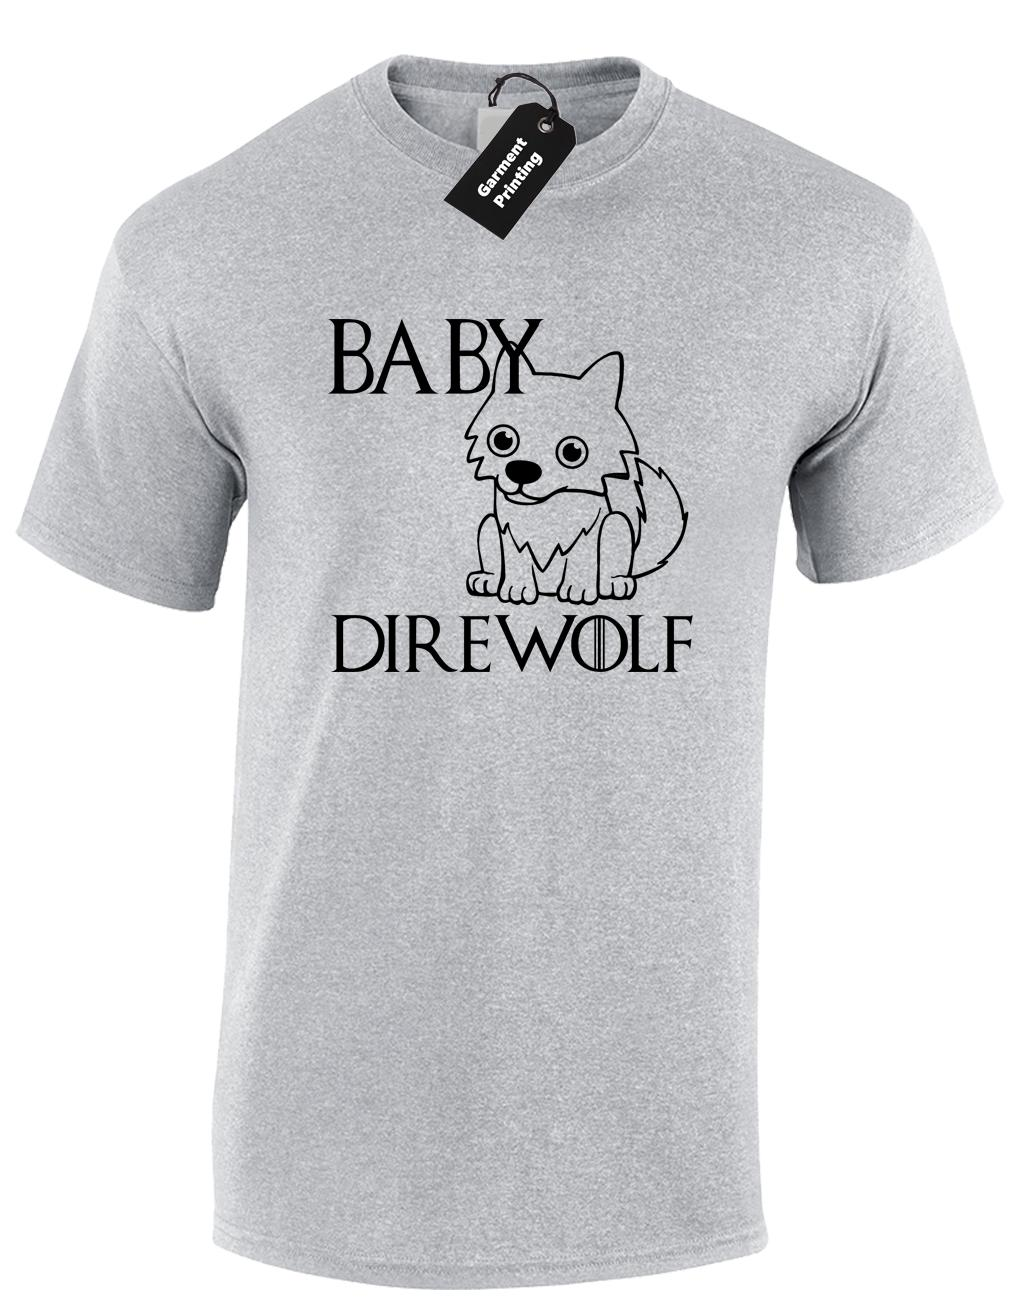 BABY DIREWOLF MENS T-SHIRT GAME OF SNOW KHALEESI JON THRONES KING OF NORTH